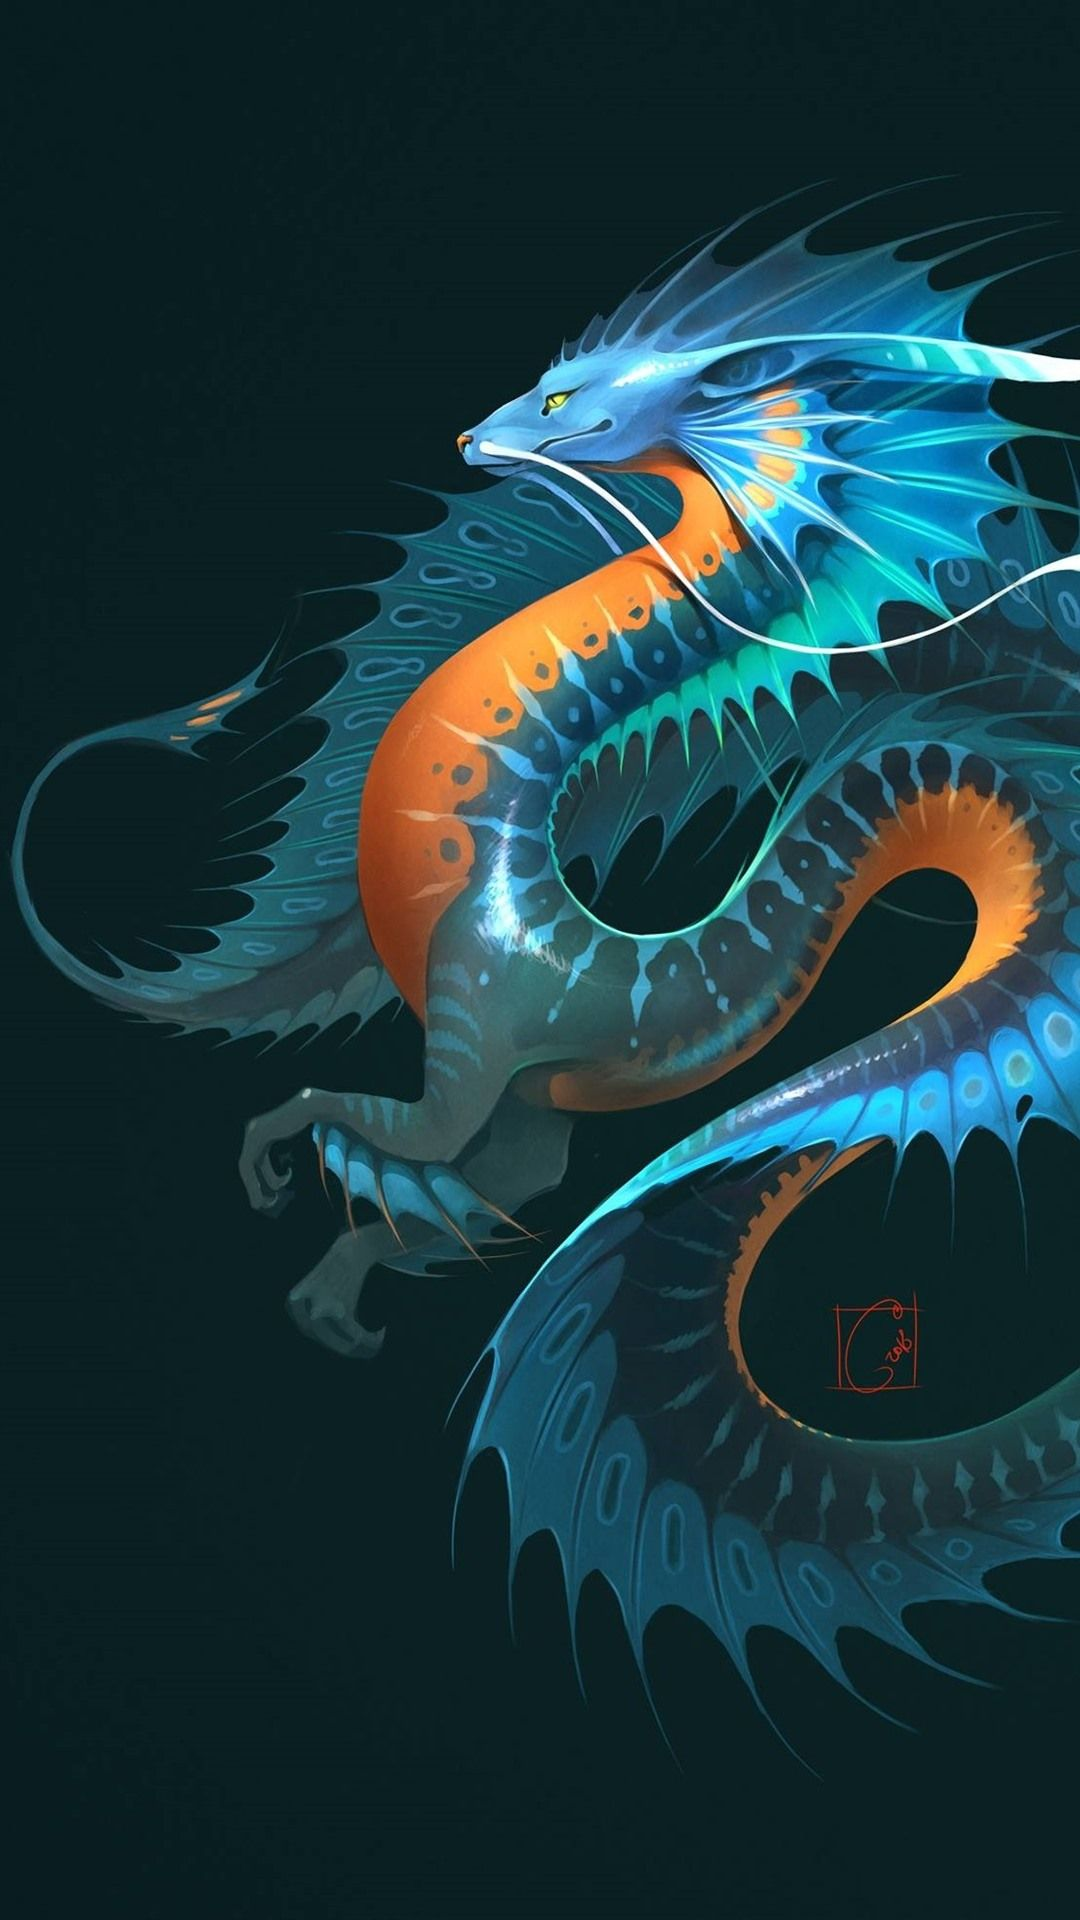 Dragon Background In 2020 Wallpaper Iphone Neon Dragon Images Iphone Art